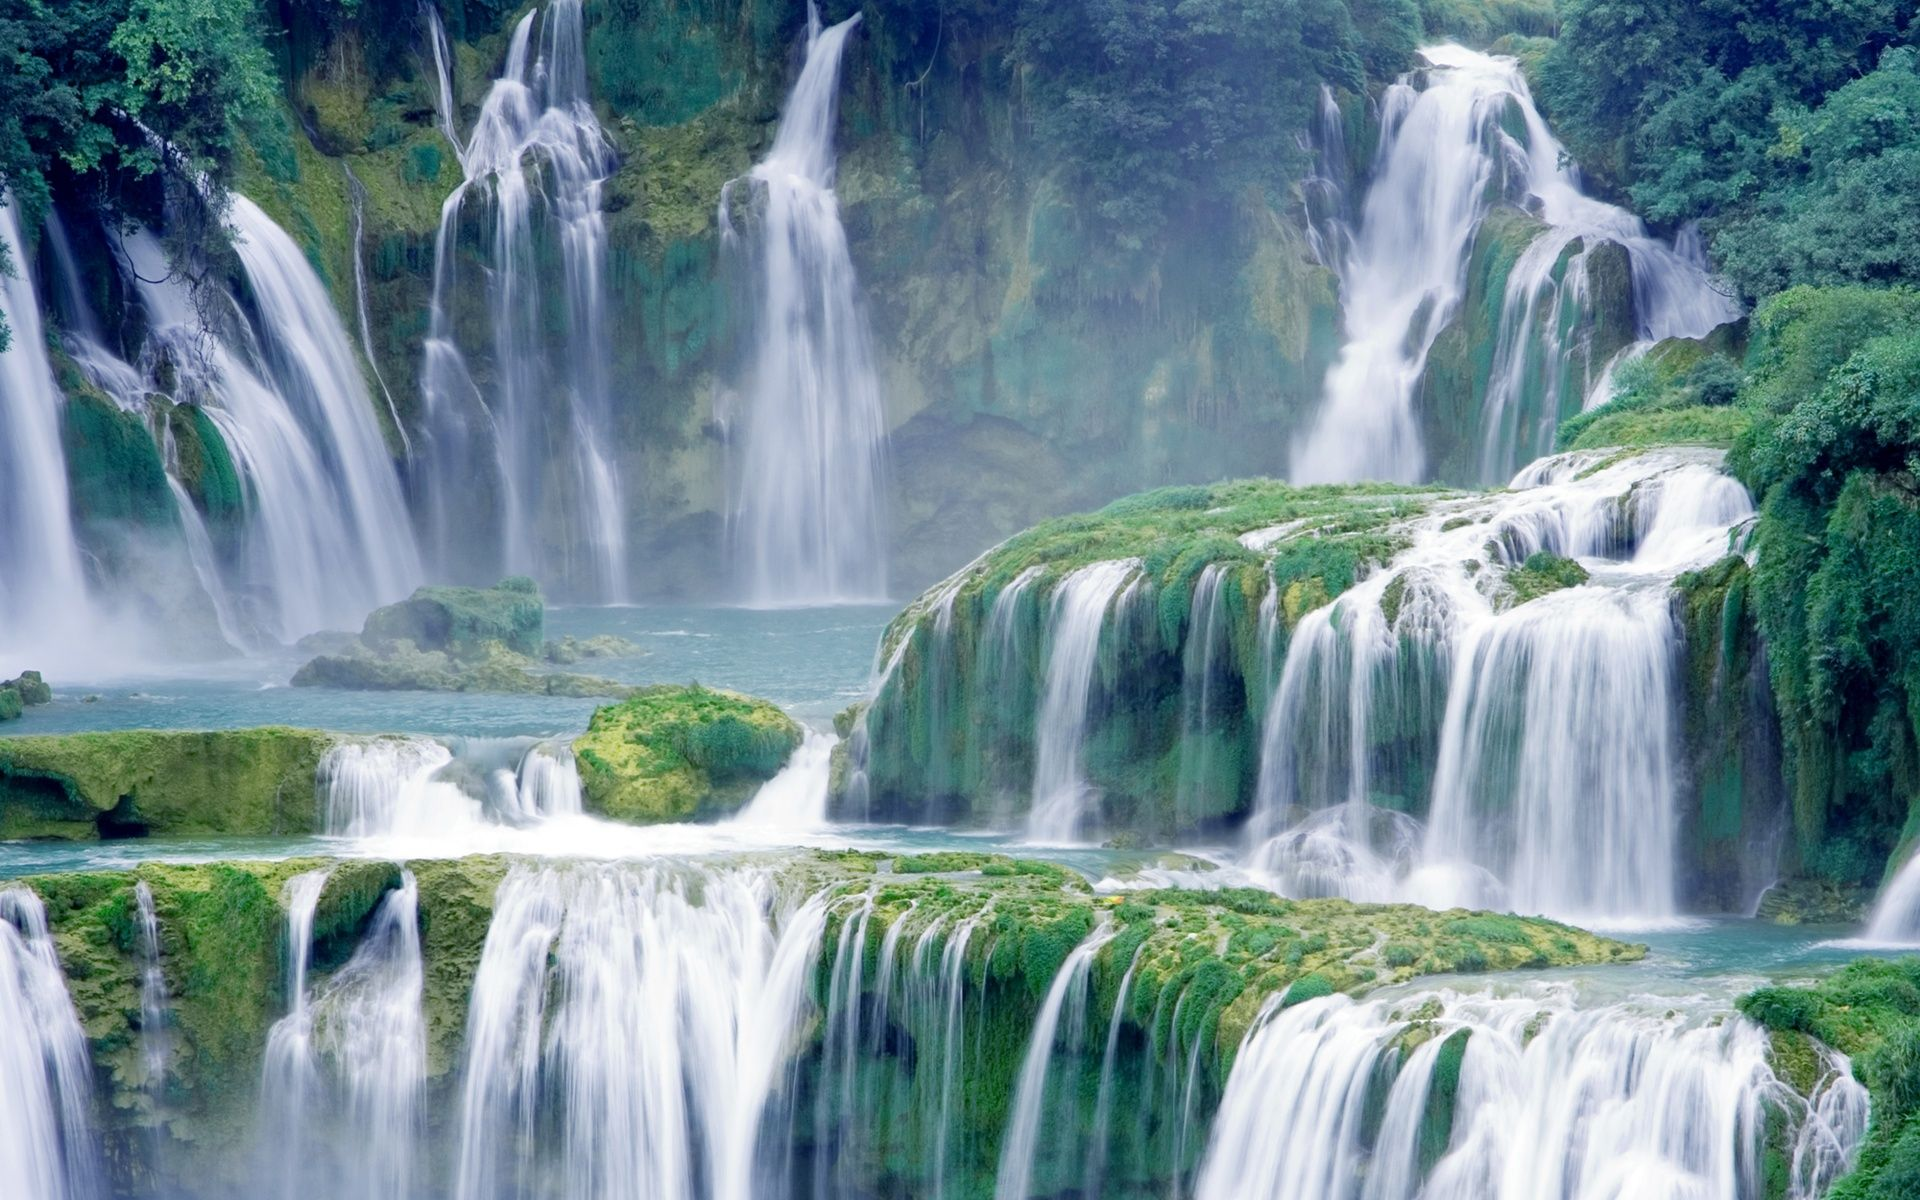 Waterfall Hd Wallpapers Free Download Nature Images Jpg 1920 1200 Beautiful Waterfalls Waterfall Wallpaper Waterfall